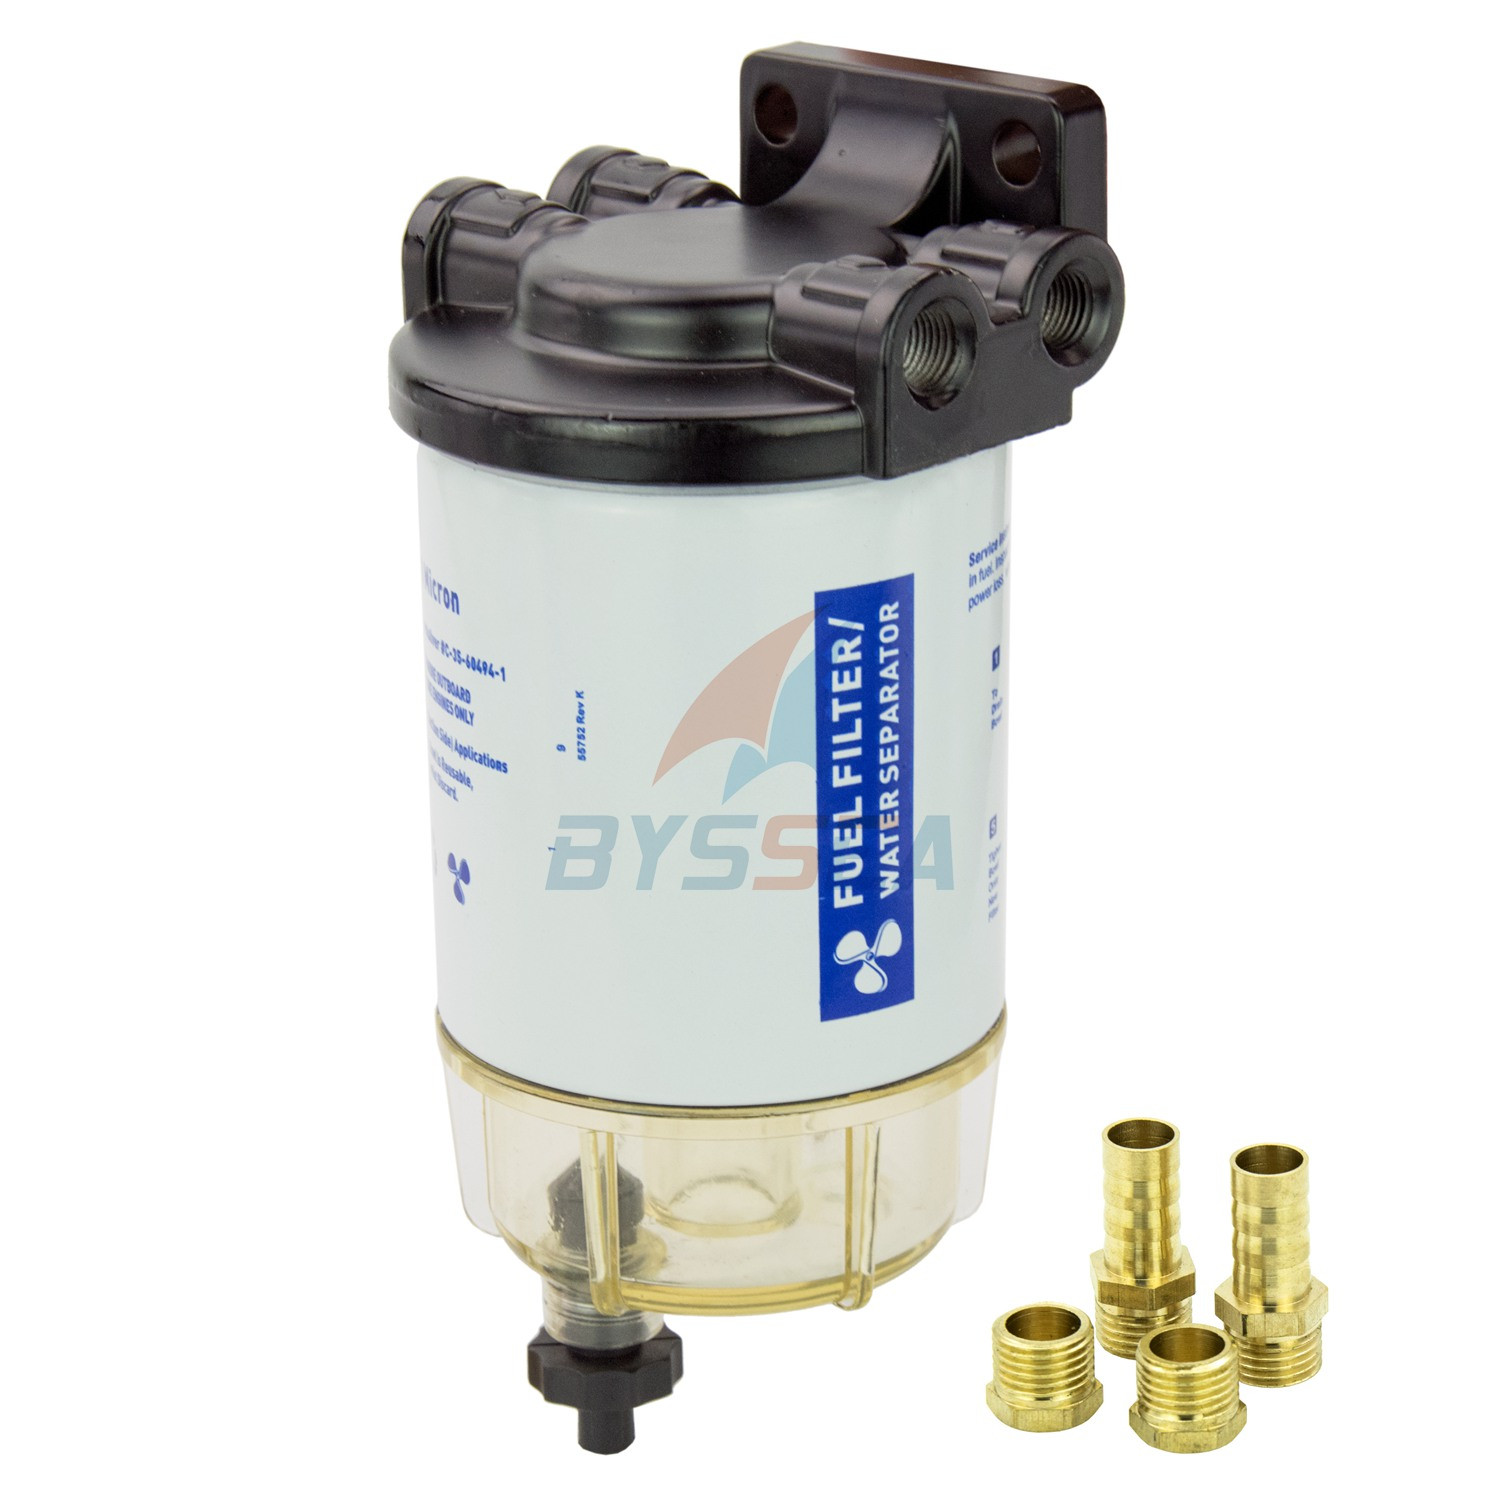 UNIVERSAL Boat Fuel Filter Marine Fuel Water Separator for Outboard